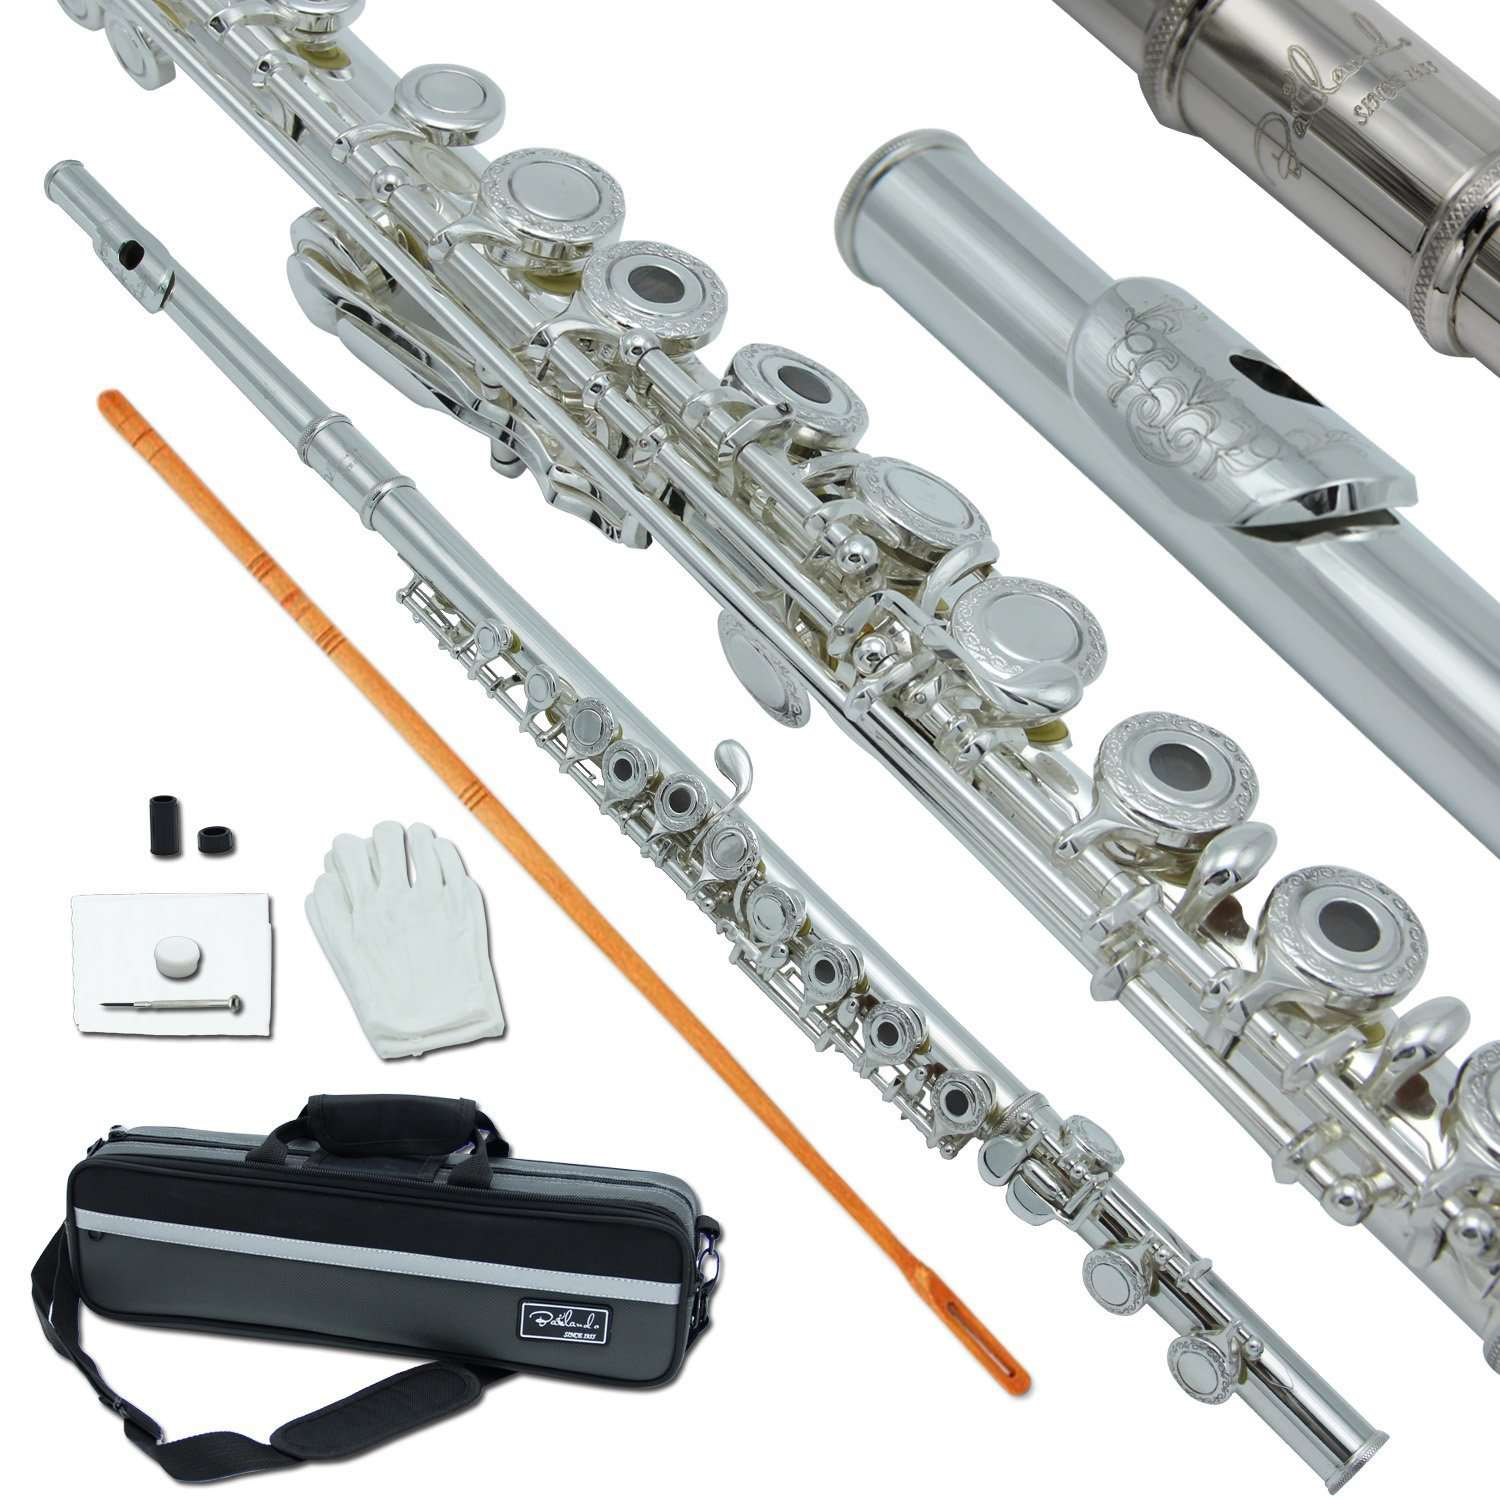 Bailando Silver Plated Carved Pattern Flute, Offset G, B-Foot, Split E Mechanism, Open Hole and Excellent Tremolo